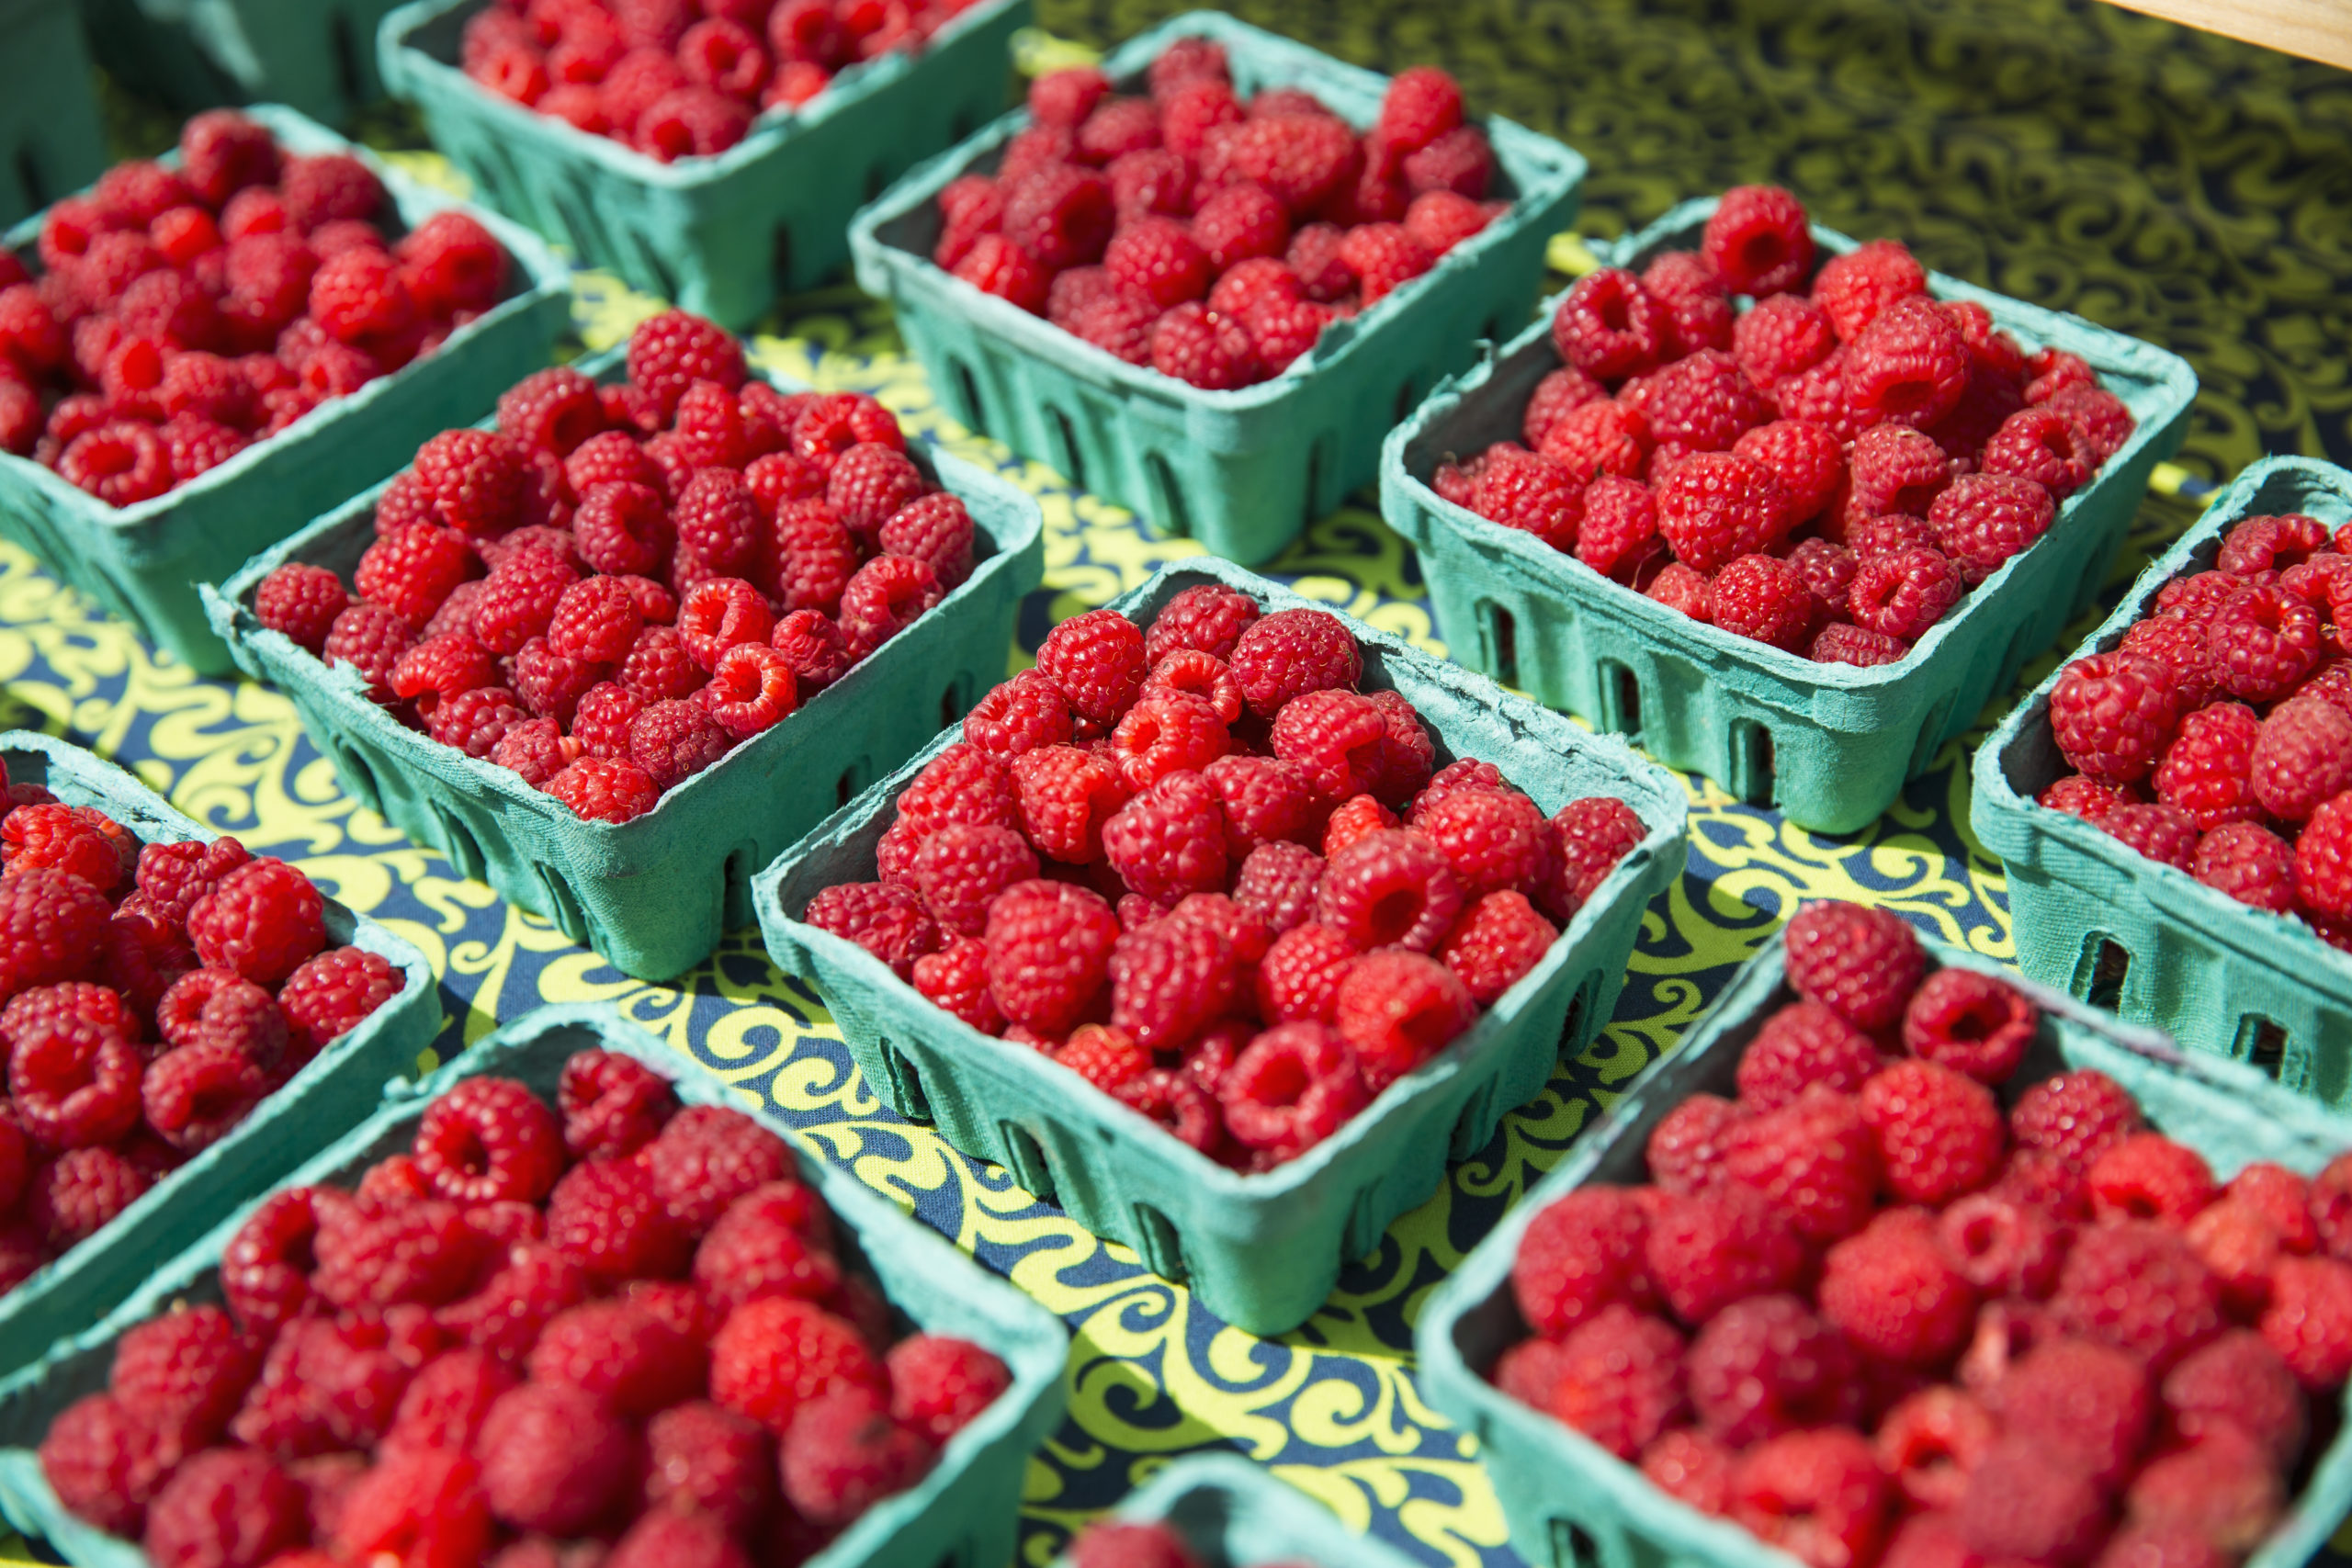 A farm stand, with displays of punnets of fresh berry fruits. Raspberries